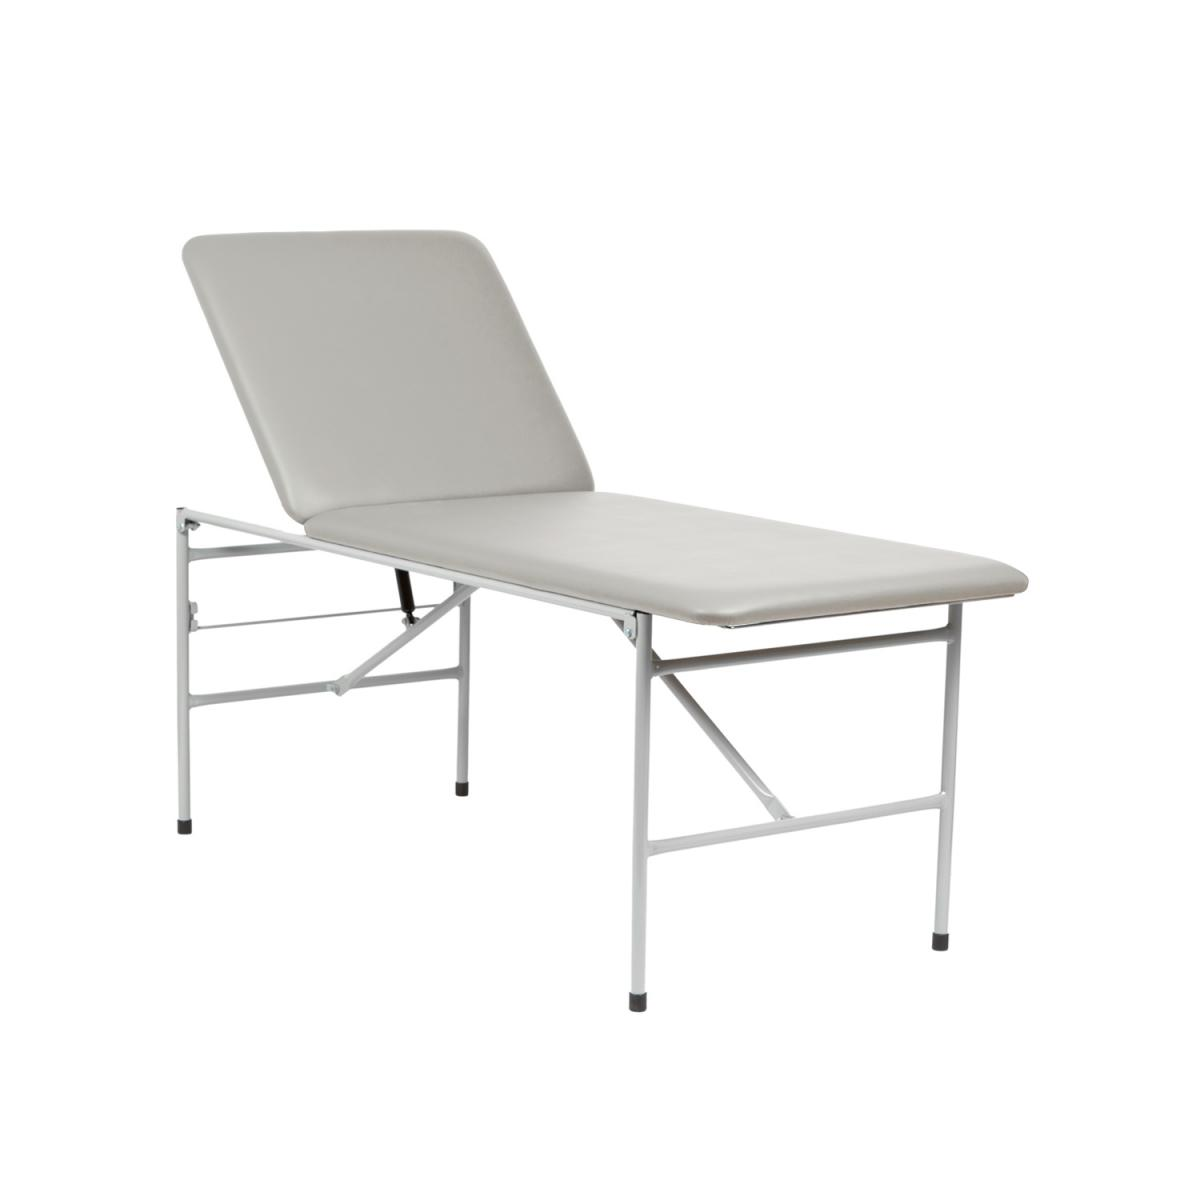 Examination table 425